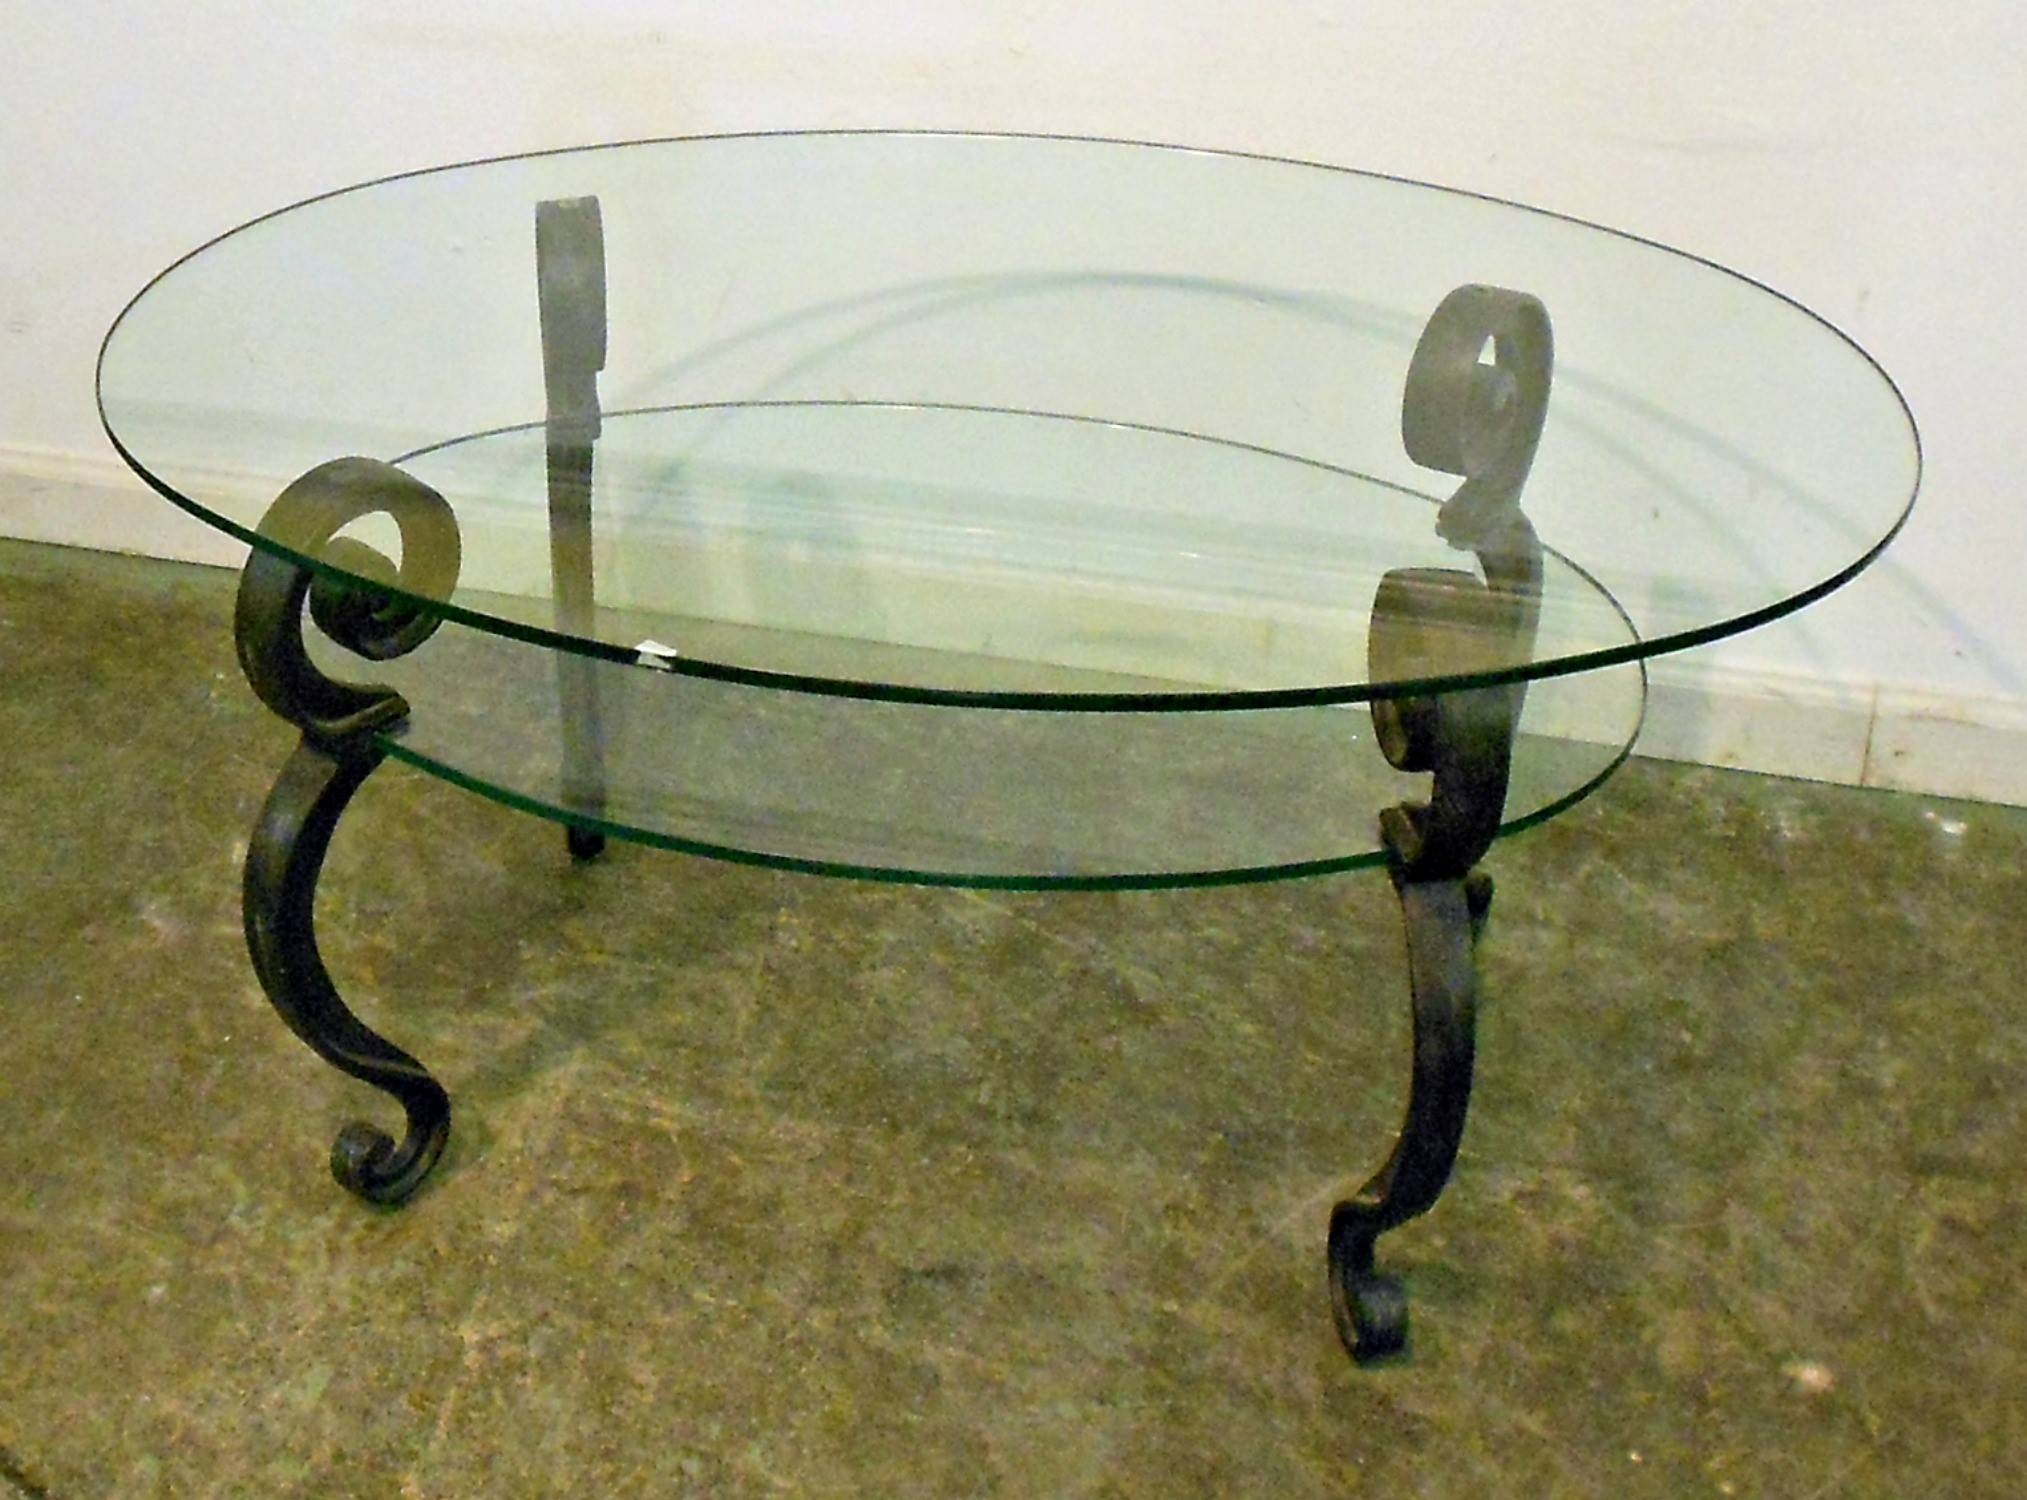 Furniture: Enchanting Small Coffee Tables For Small Spaces Designs intended for Antique Glass Top Coffee Tables (Image 21 of 30)